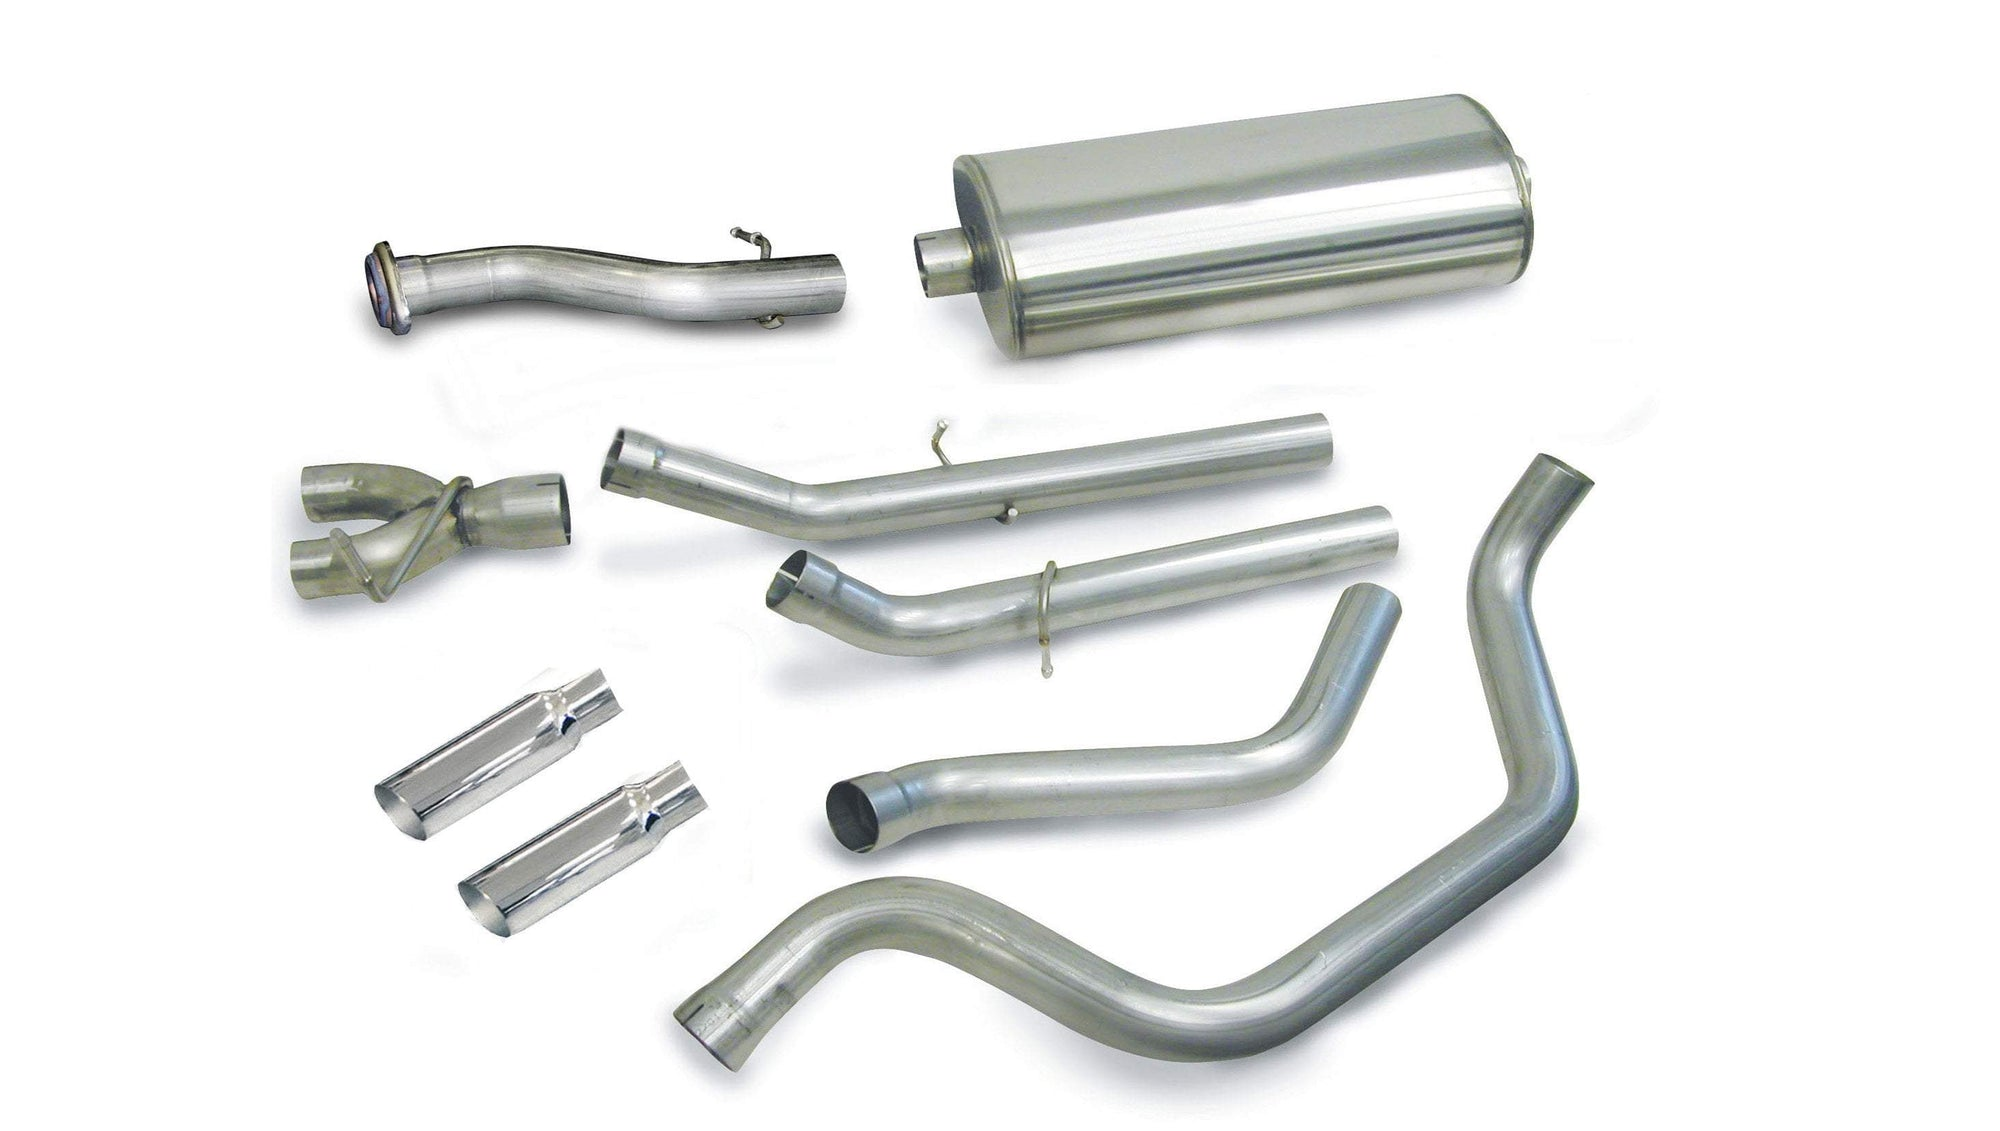 "dB Cat-Back Exhaust Polished / Sport / Dual Rear - Single 4in 1999-2006 Chevrolet Silverado, GMC Sierra, 4.8L, 5.3L V8, Regular Cab Standard Bed, 3.0"" Dual Rear Exit Catback Exhaust System with 4.0"" Tips (24274) Sport Sound Level"